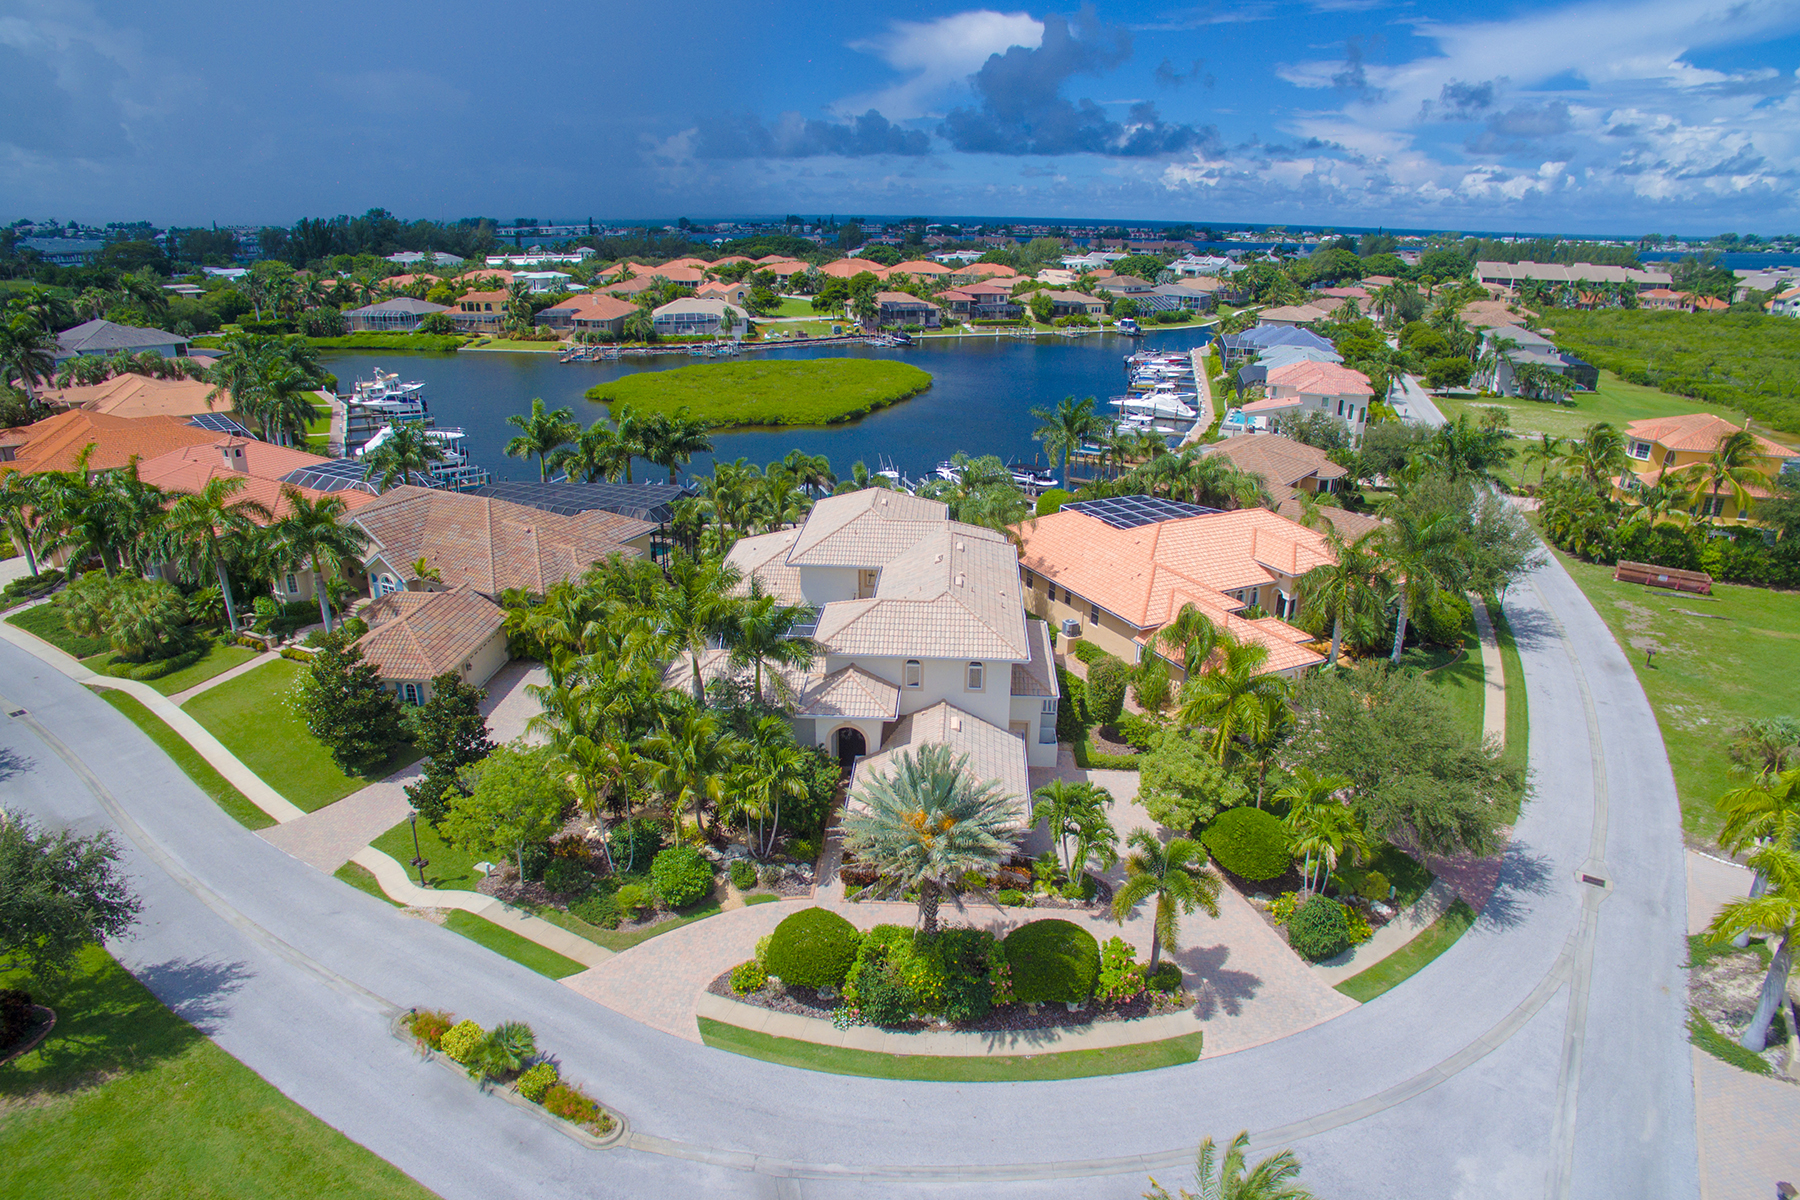 Single Family Home for Sale at HARBOUR LANDINGS ESTATES 4004 Commodore Blvd Cortez, Florida 34215 United States